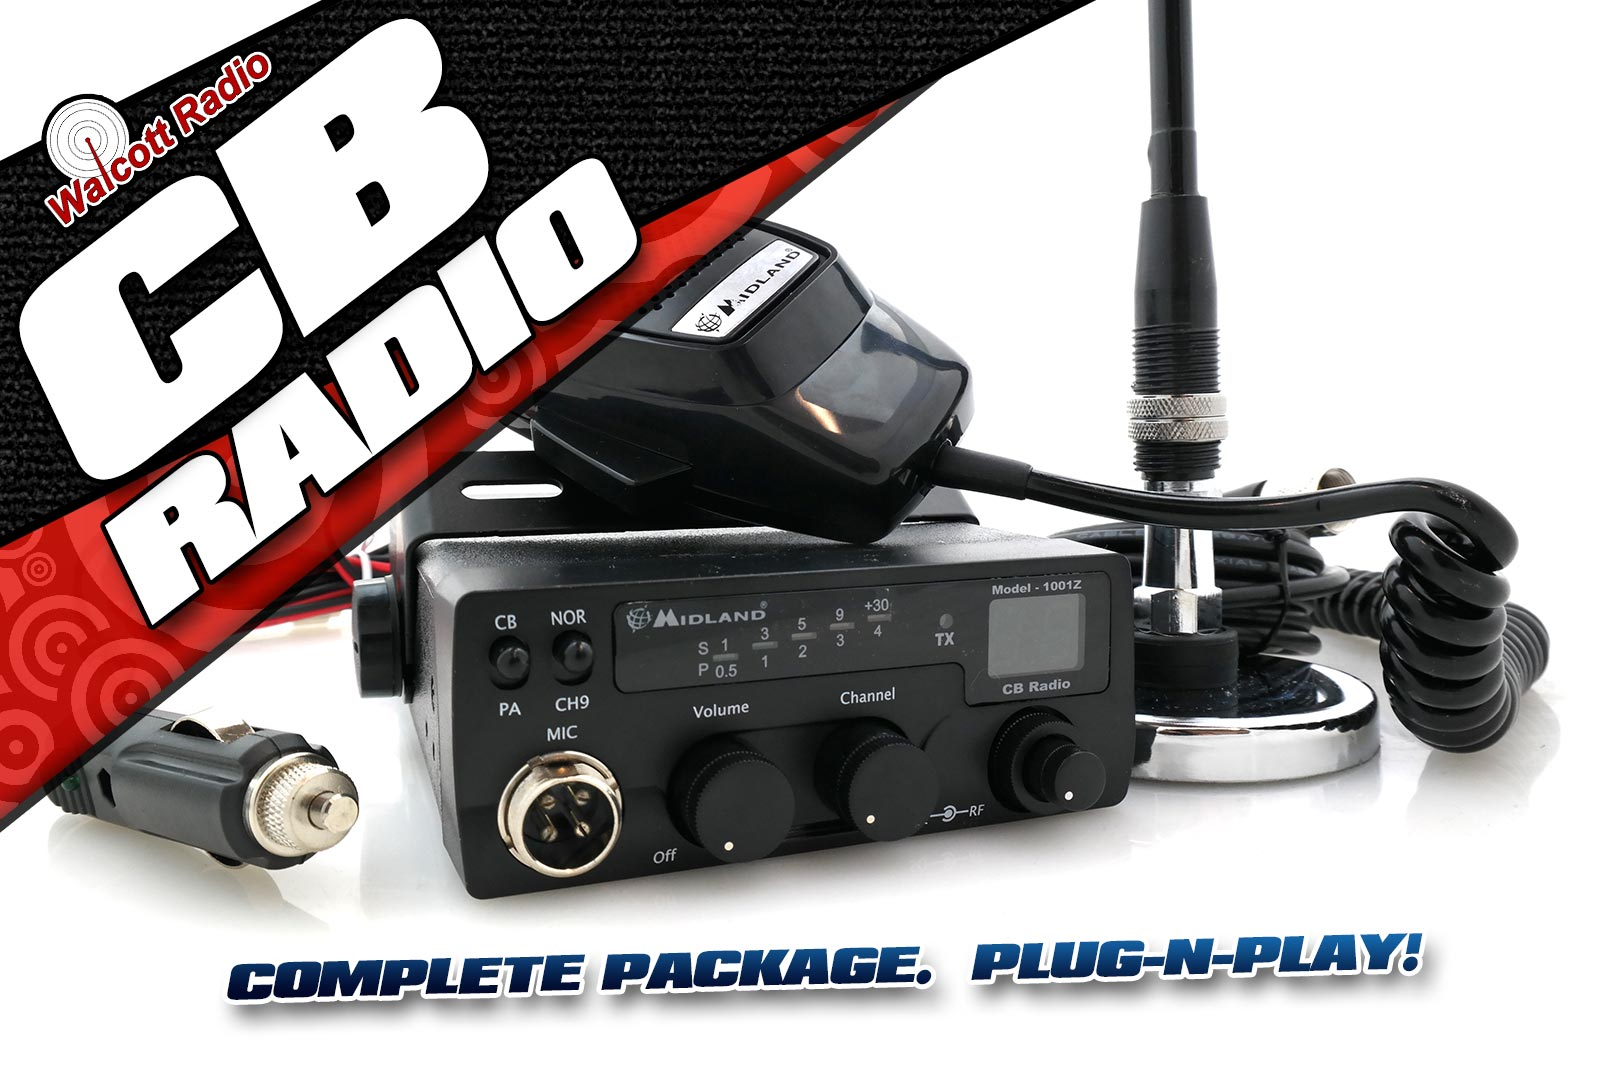 Local Radio Repair Shops Citizen Band Radios Cb Accessories Walcott Browse Our Selection Of Antennas Microphones Mounts And More Thousands Are In Stock Ready To Ship Now